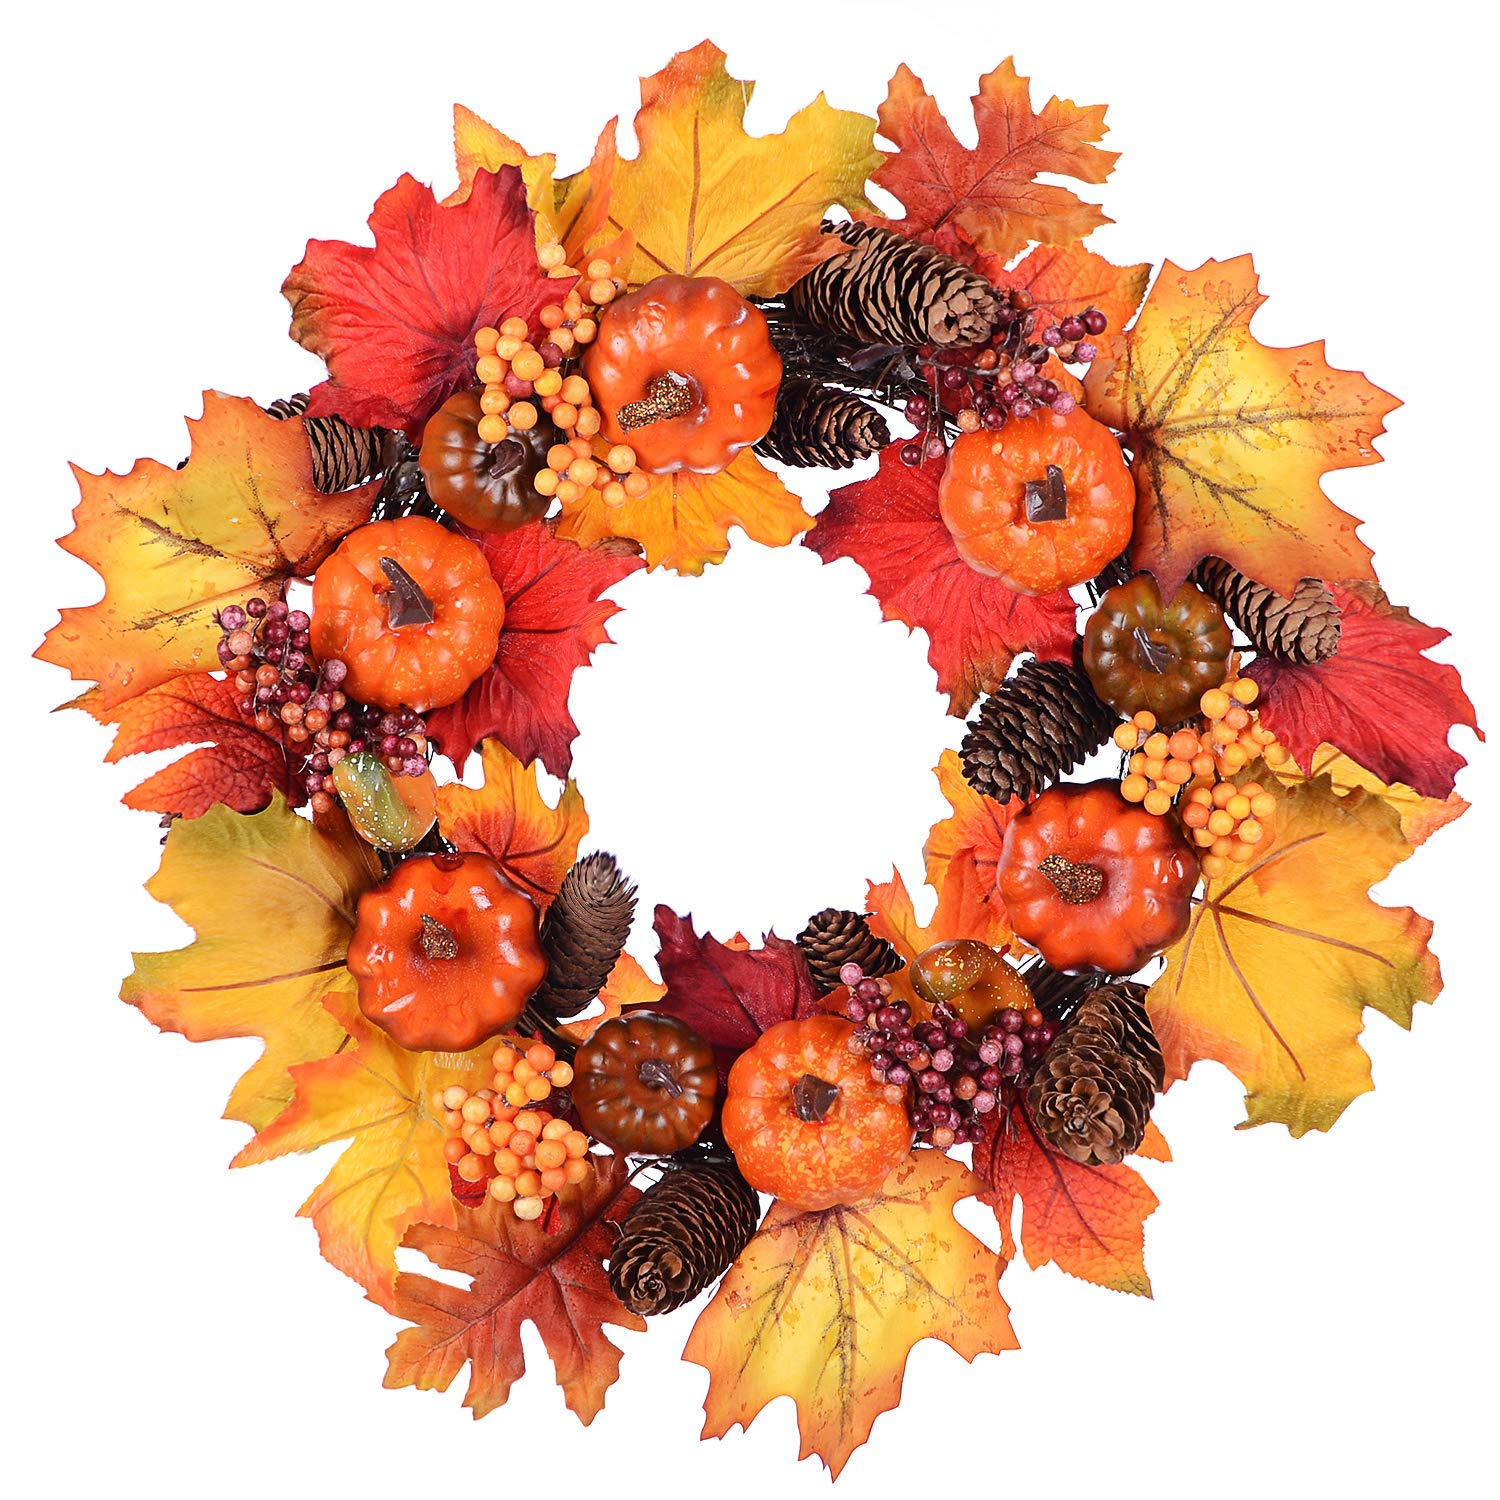 Woooow Silk Fall Front Door Wreath - 15 Inches Large Fall Wreath, Maple Leafs, Berries and Pumpkin Harvest Artificial Wreath, Brightens Front Door Decor with Rich Fall Colors, Storage Box Included